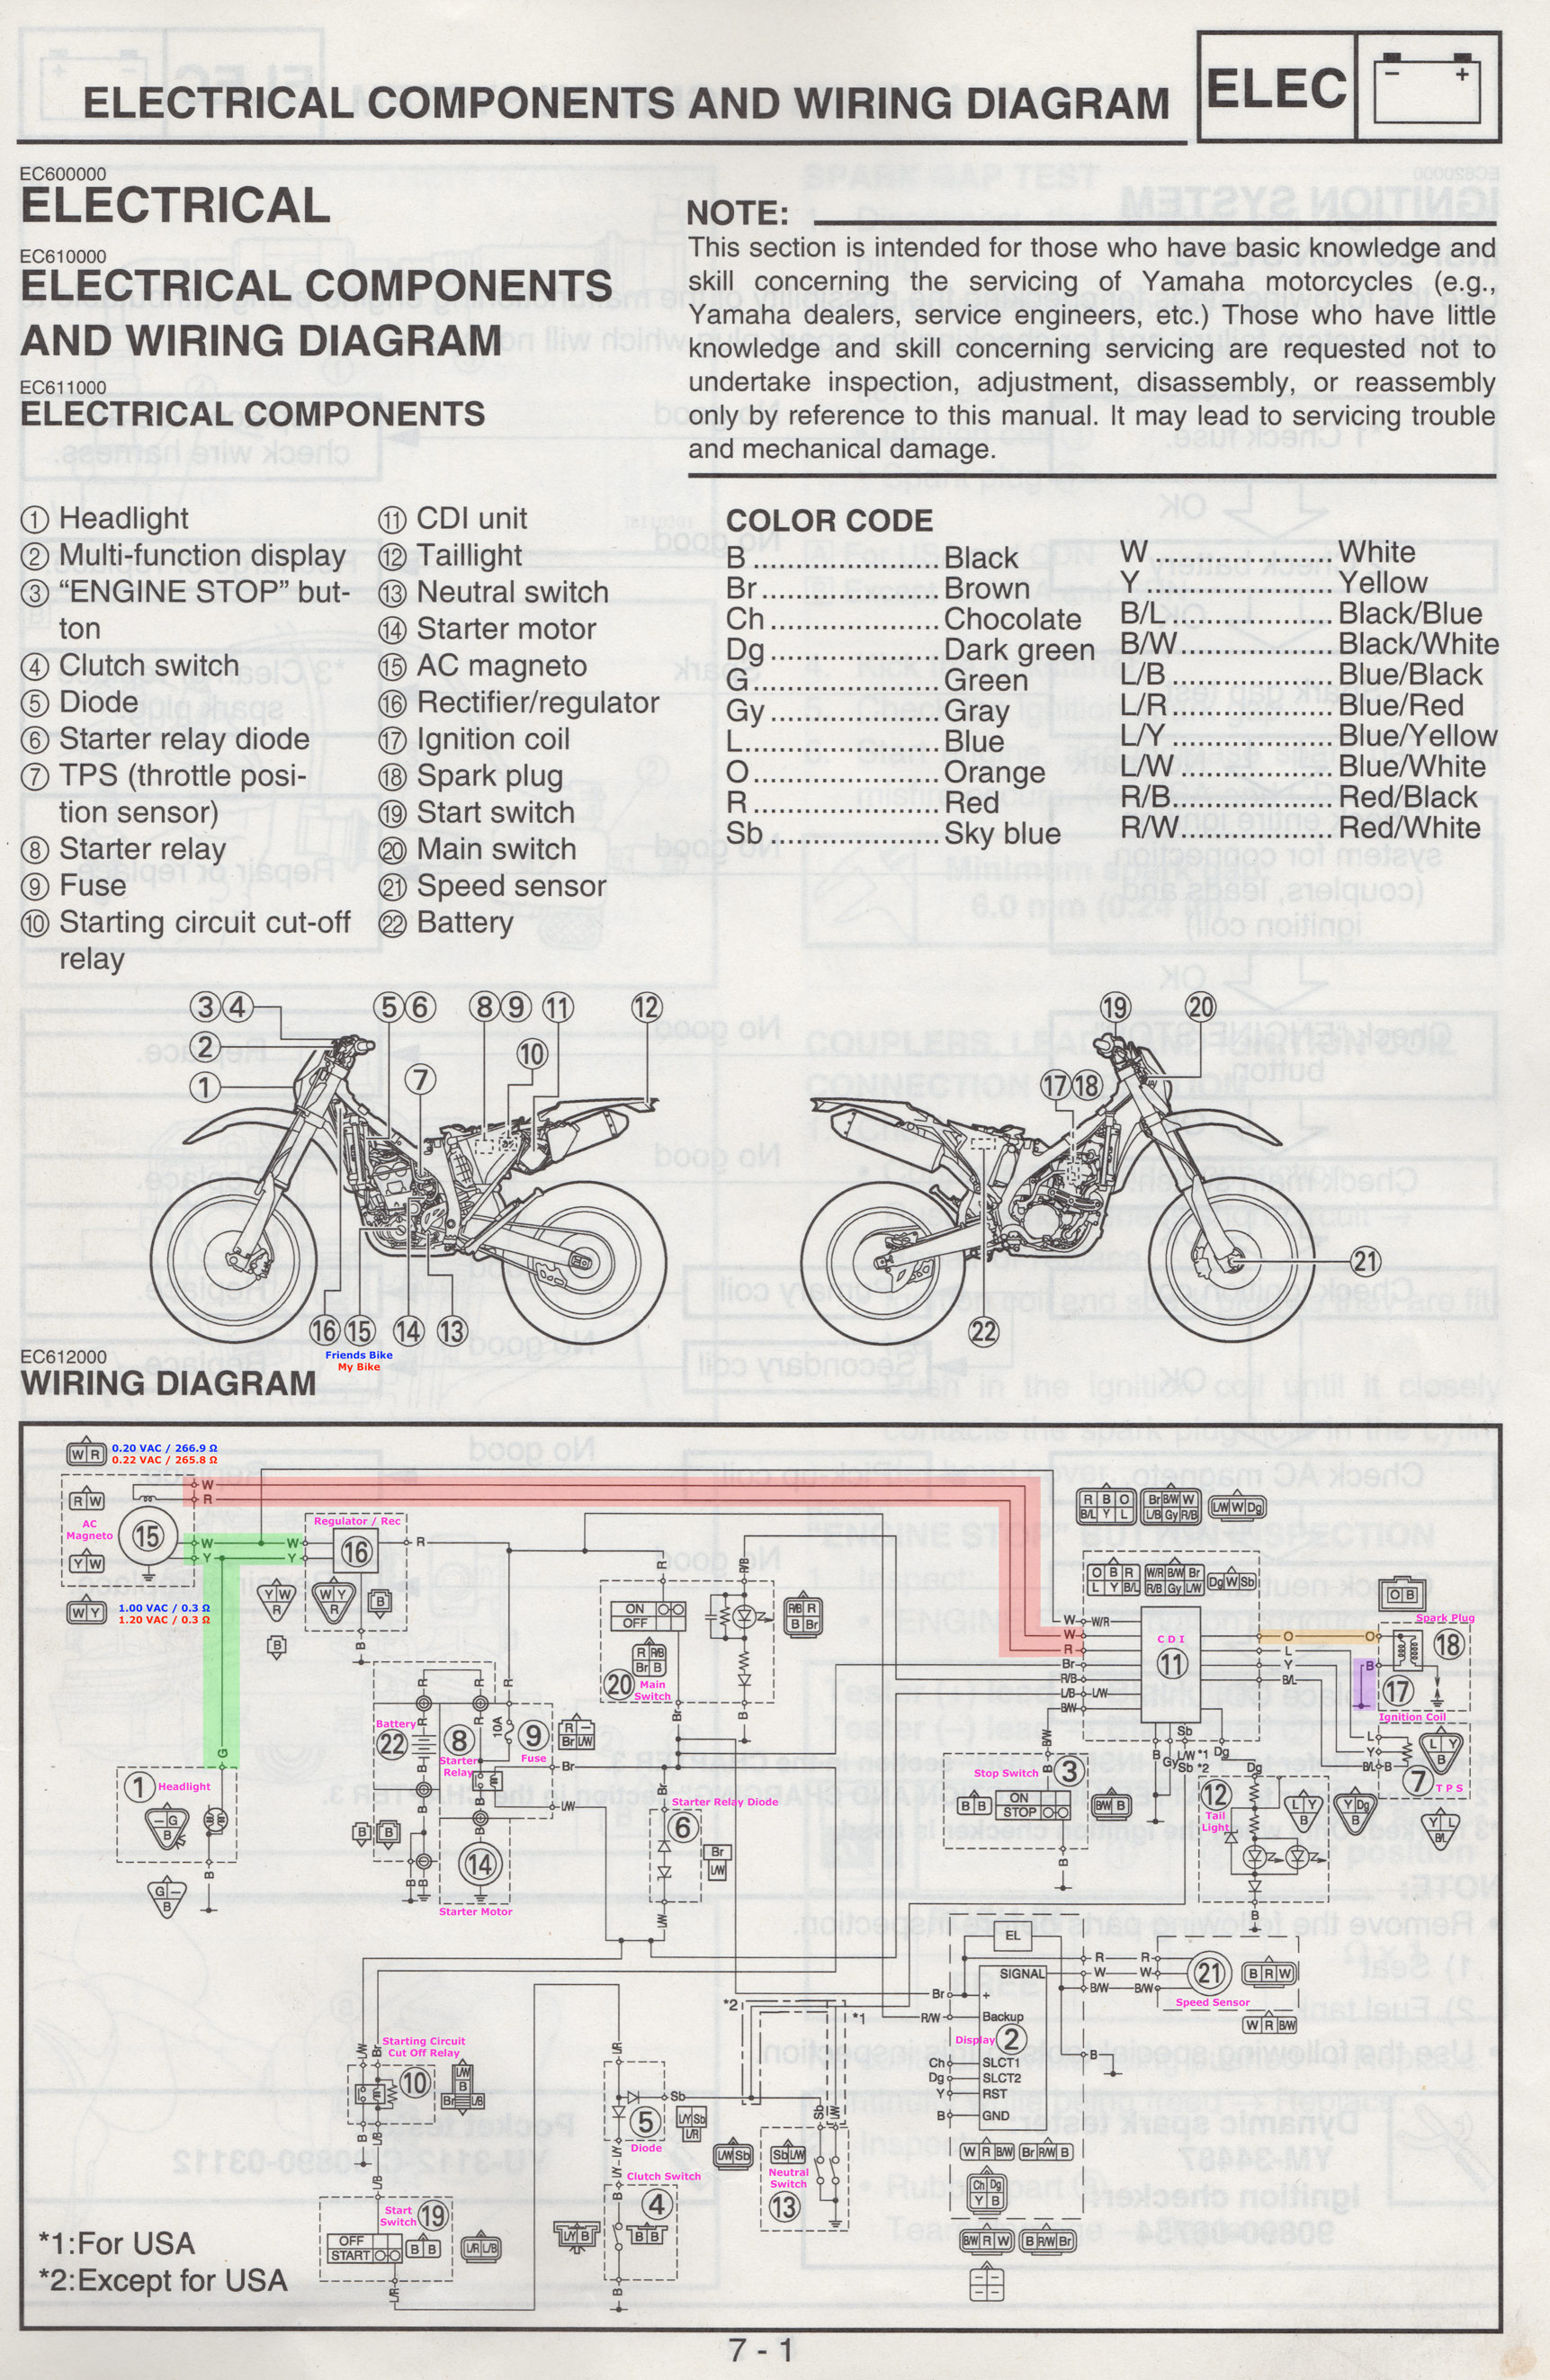 hight resolution of 2004 yamaha r6 wiring diagram 29 wiring diagram images 1993 yamaha r6 wiring diagram 2004